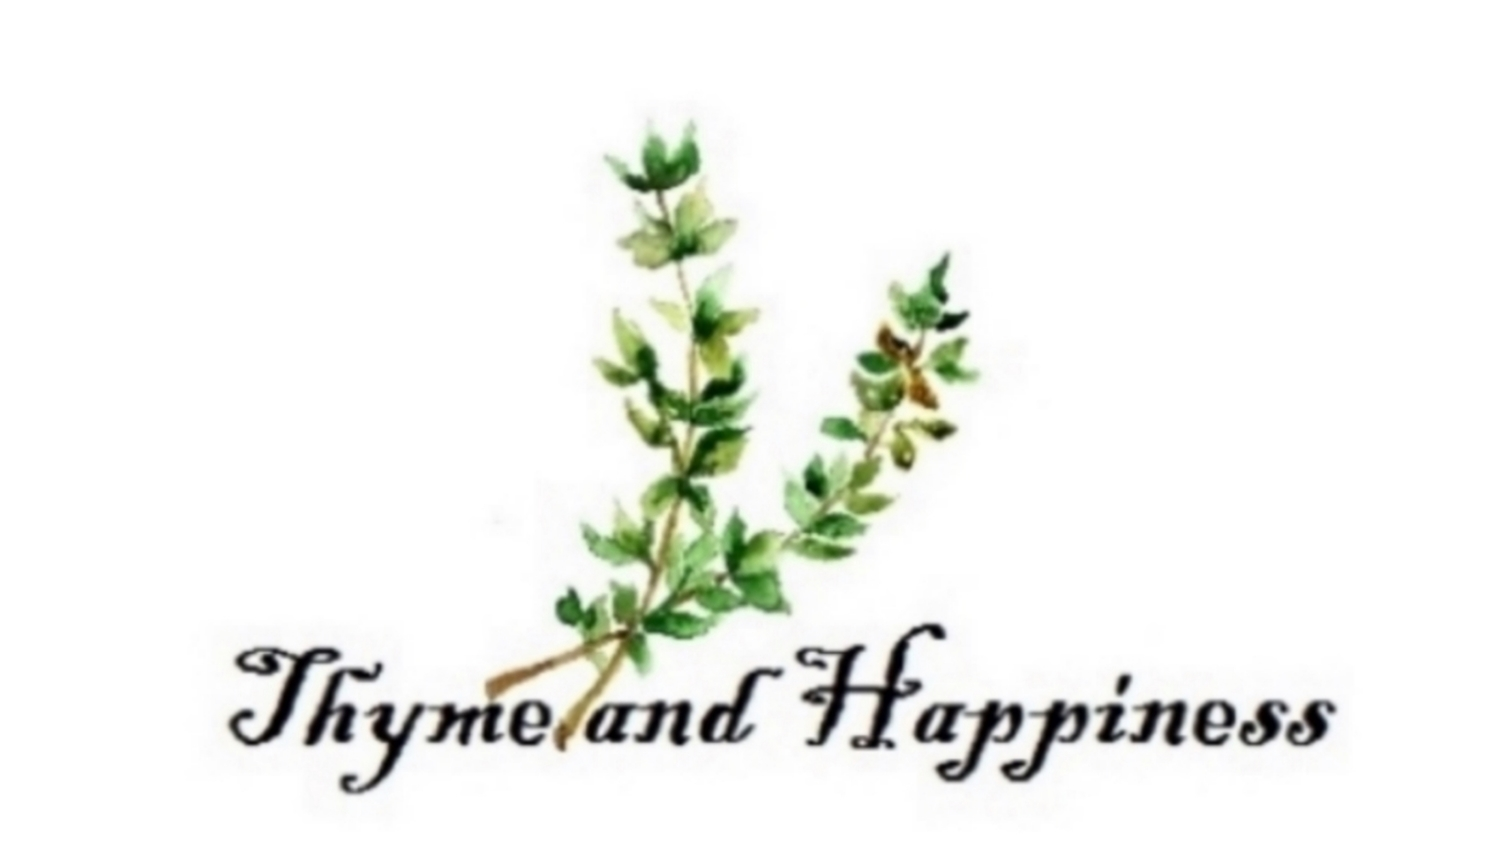 Thyme and Happiness